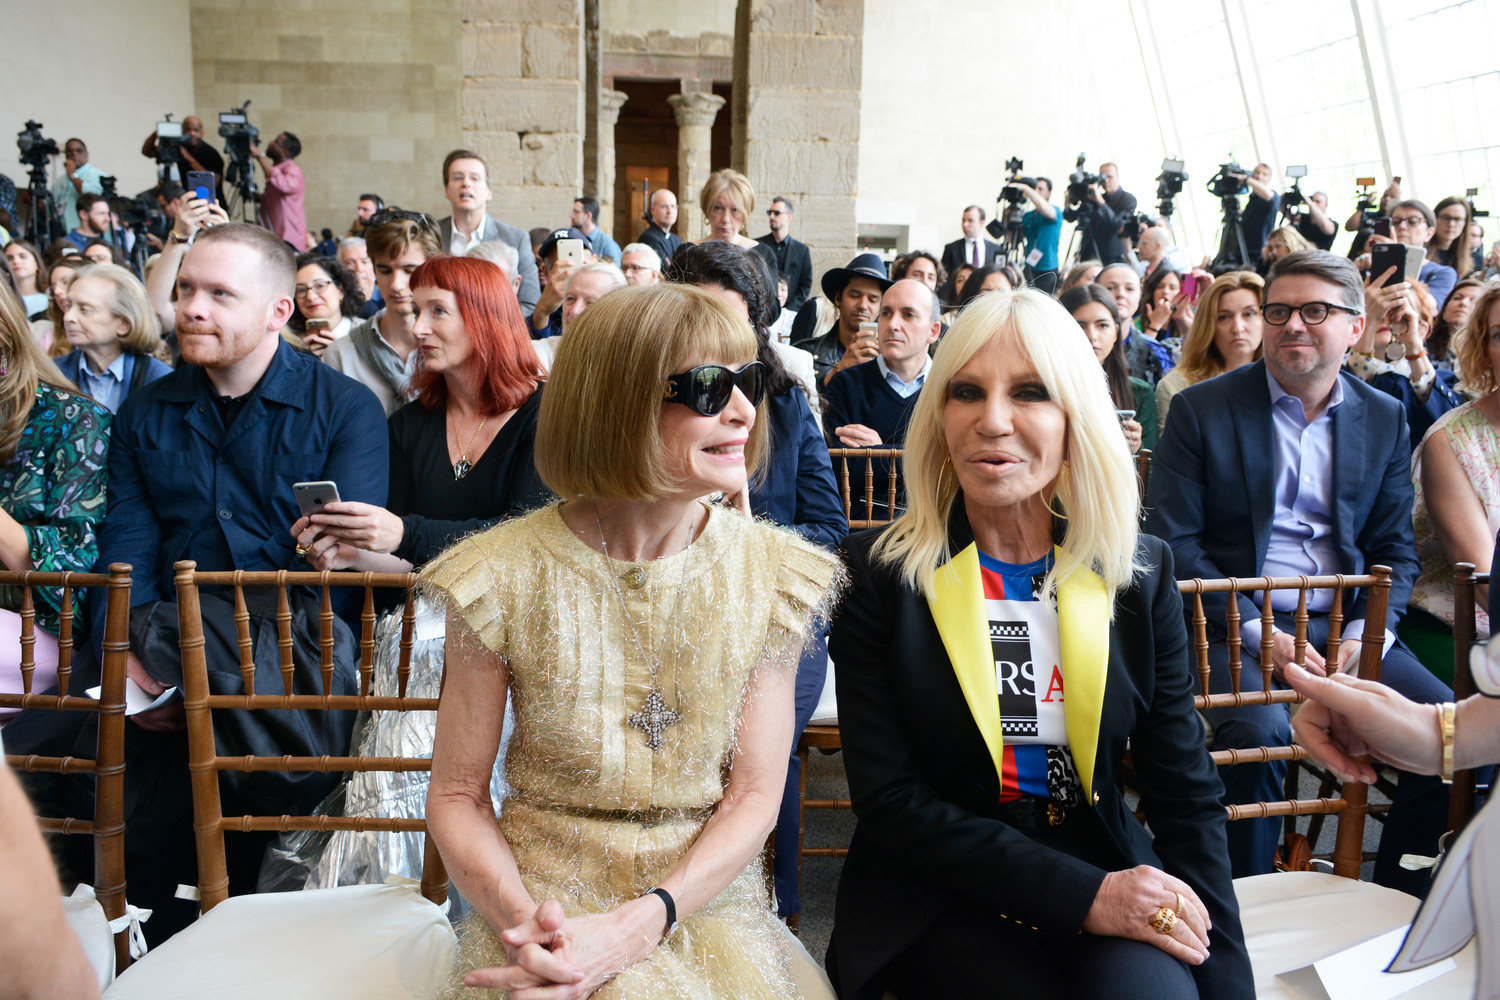 Fashion icons Anna Wintour and Donatella Versace at the press preview.